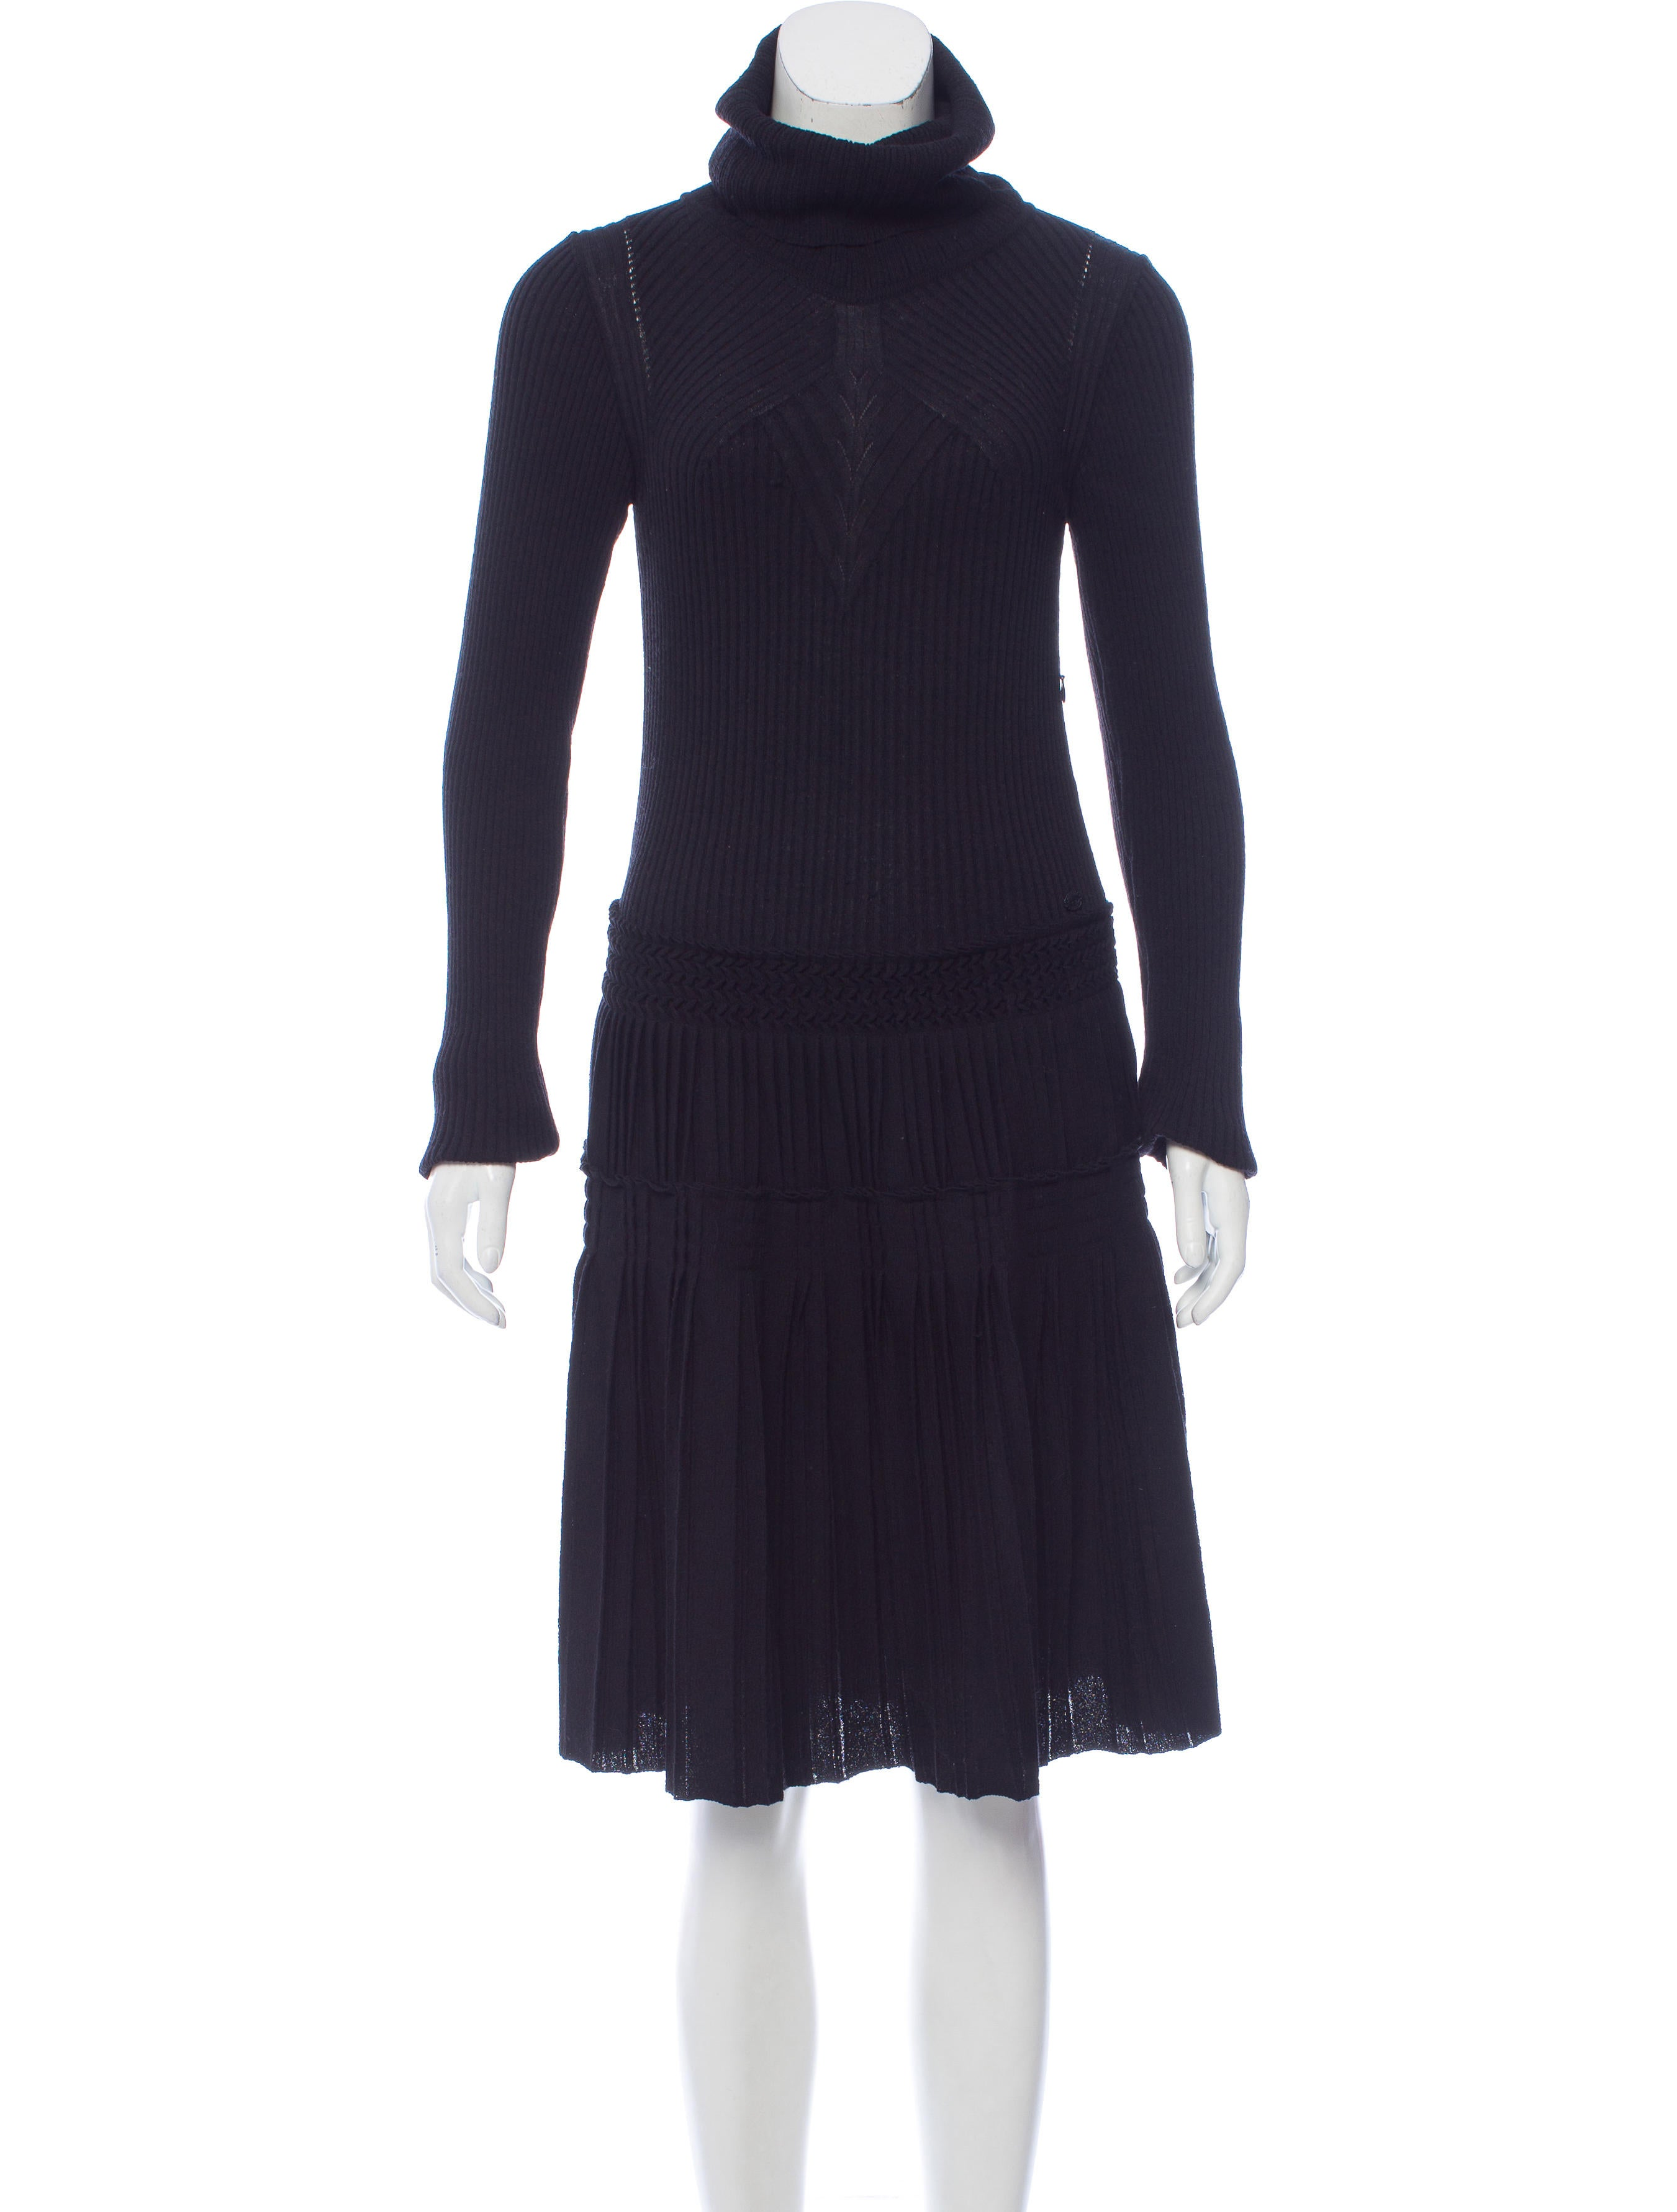 Chanel Wool Sweater Dress - Clothing - CHA185748 | The RealReal